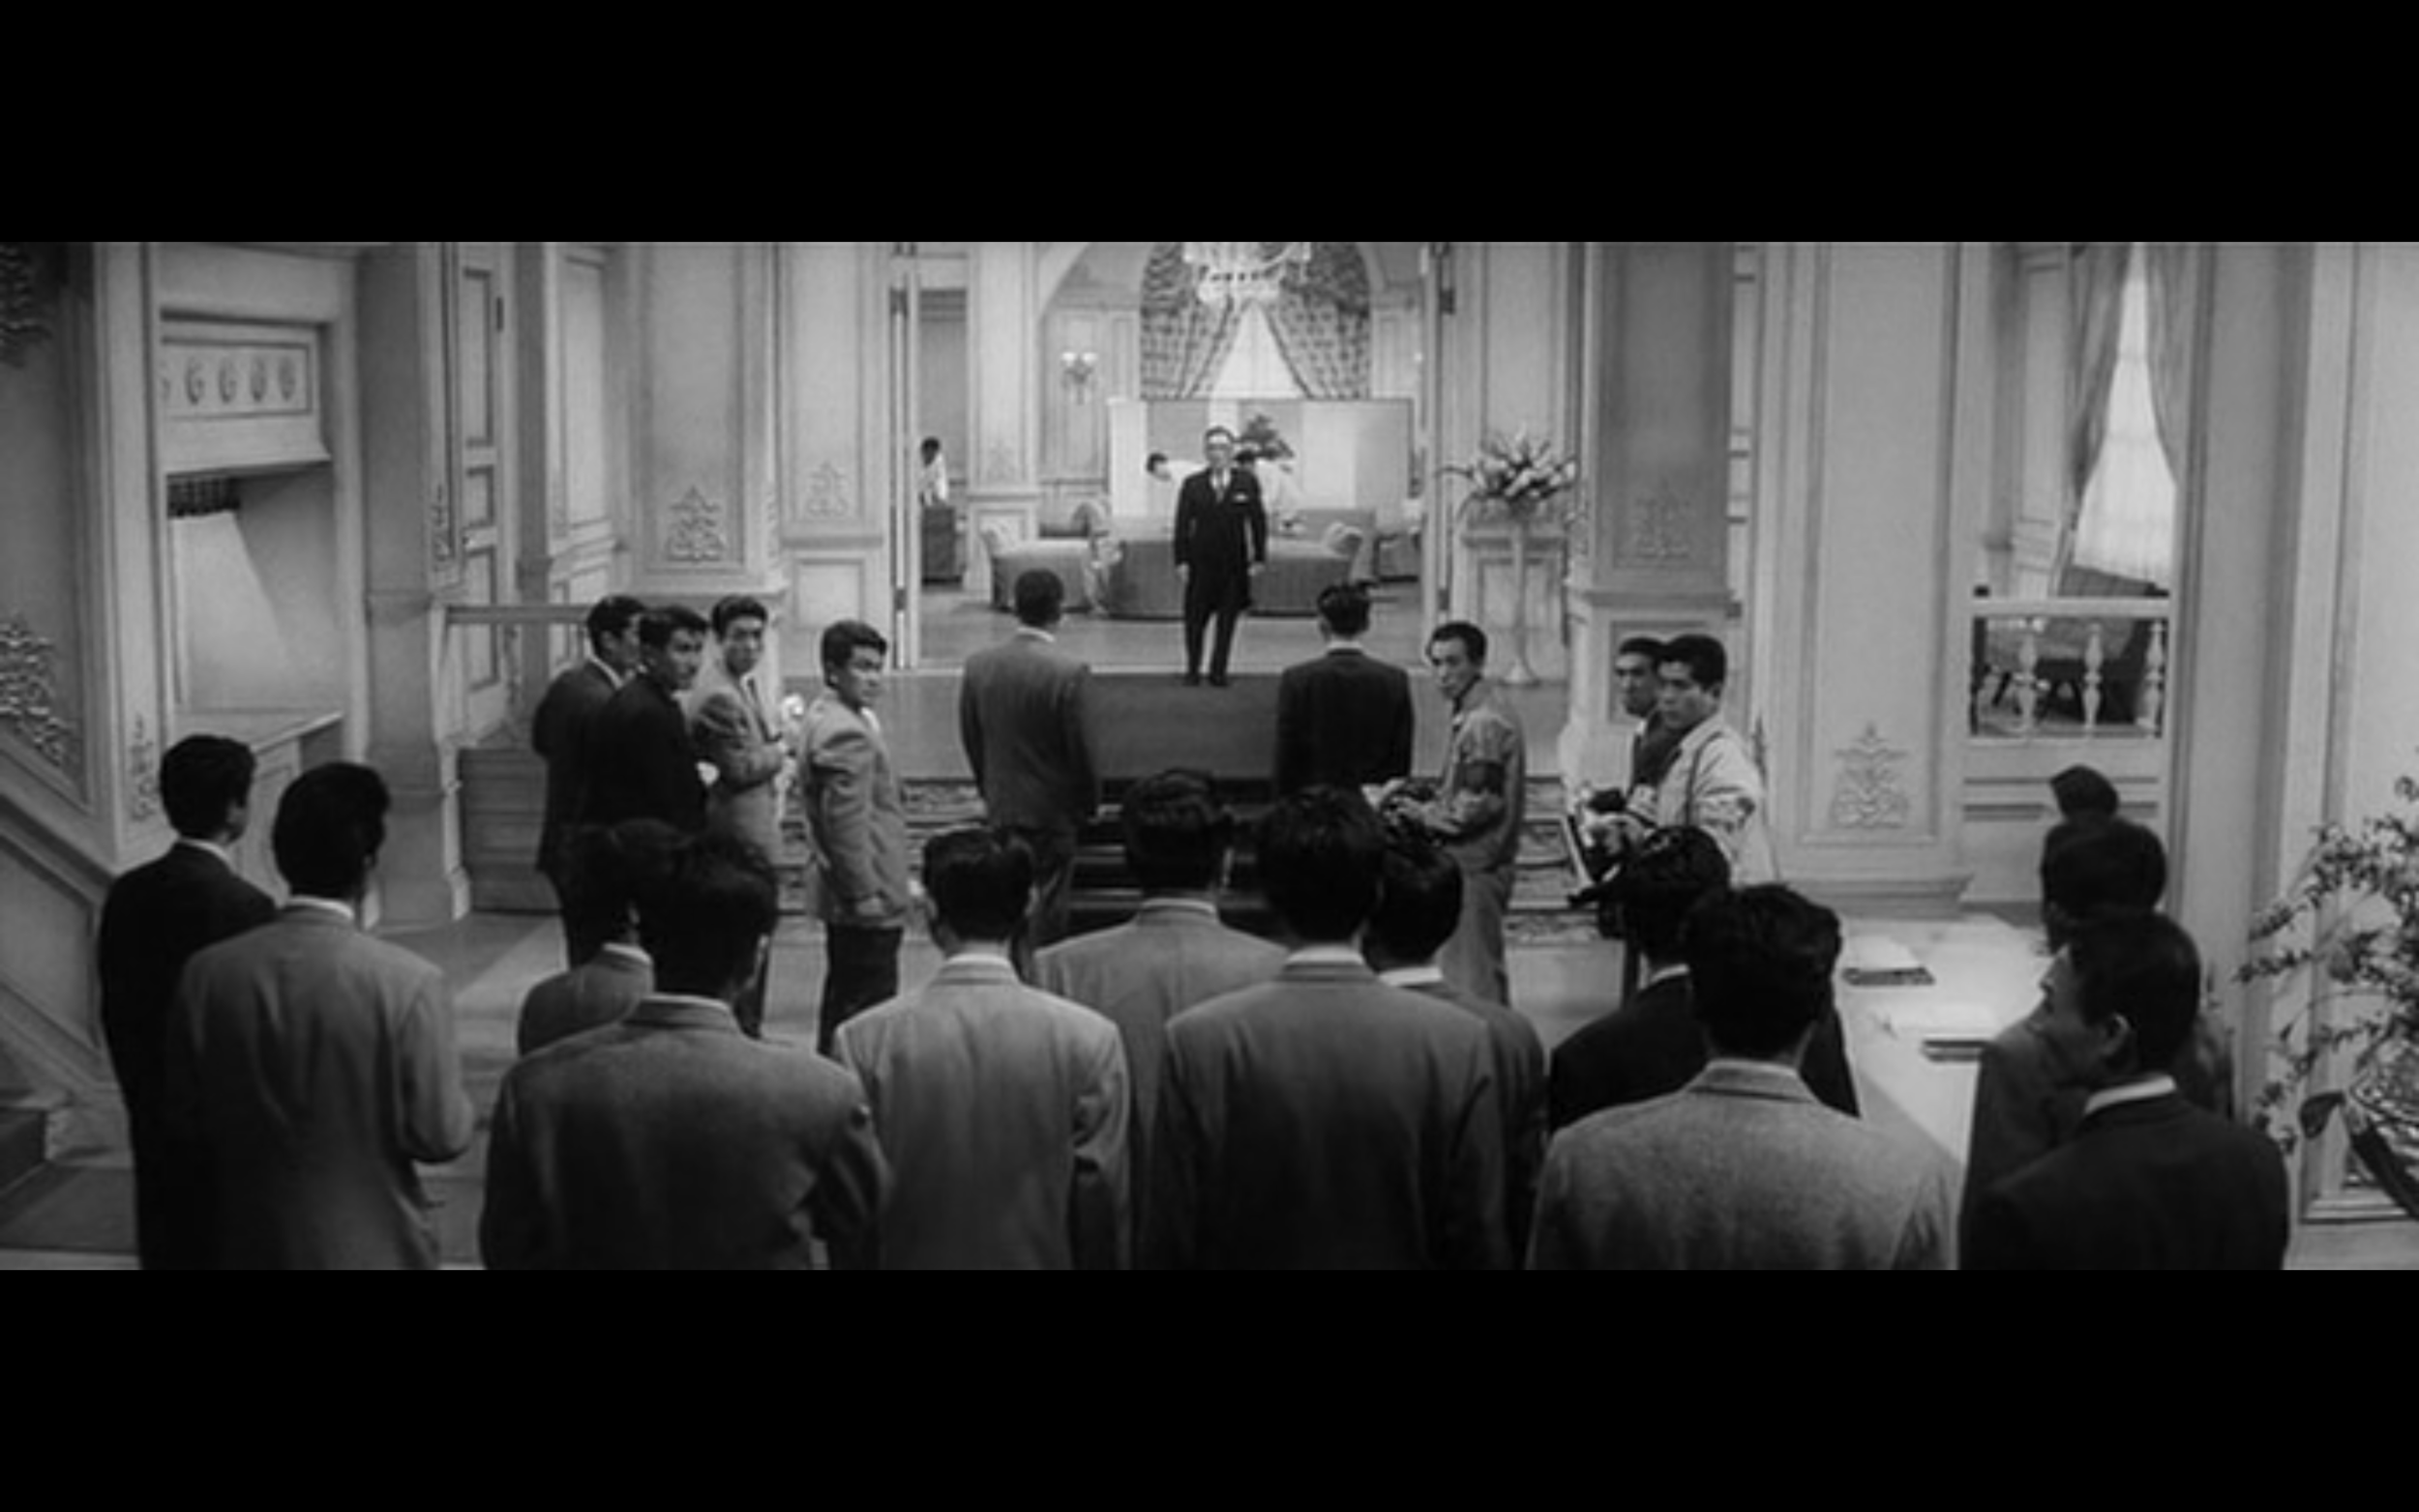 Do you see it? Kurosawa uses clear staging and clean composition to build shapes within his shots. Wada, the character at the top of the frame, serves as a point for two triangular layouts in this shot. From  The Bad Sleep Well  (1960), Dir. Akira Kurosawa.